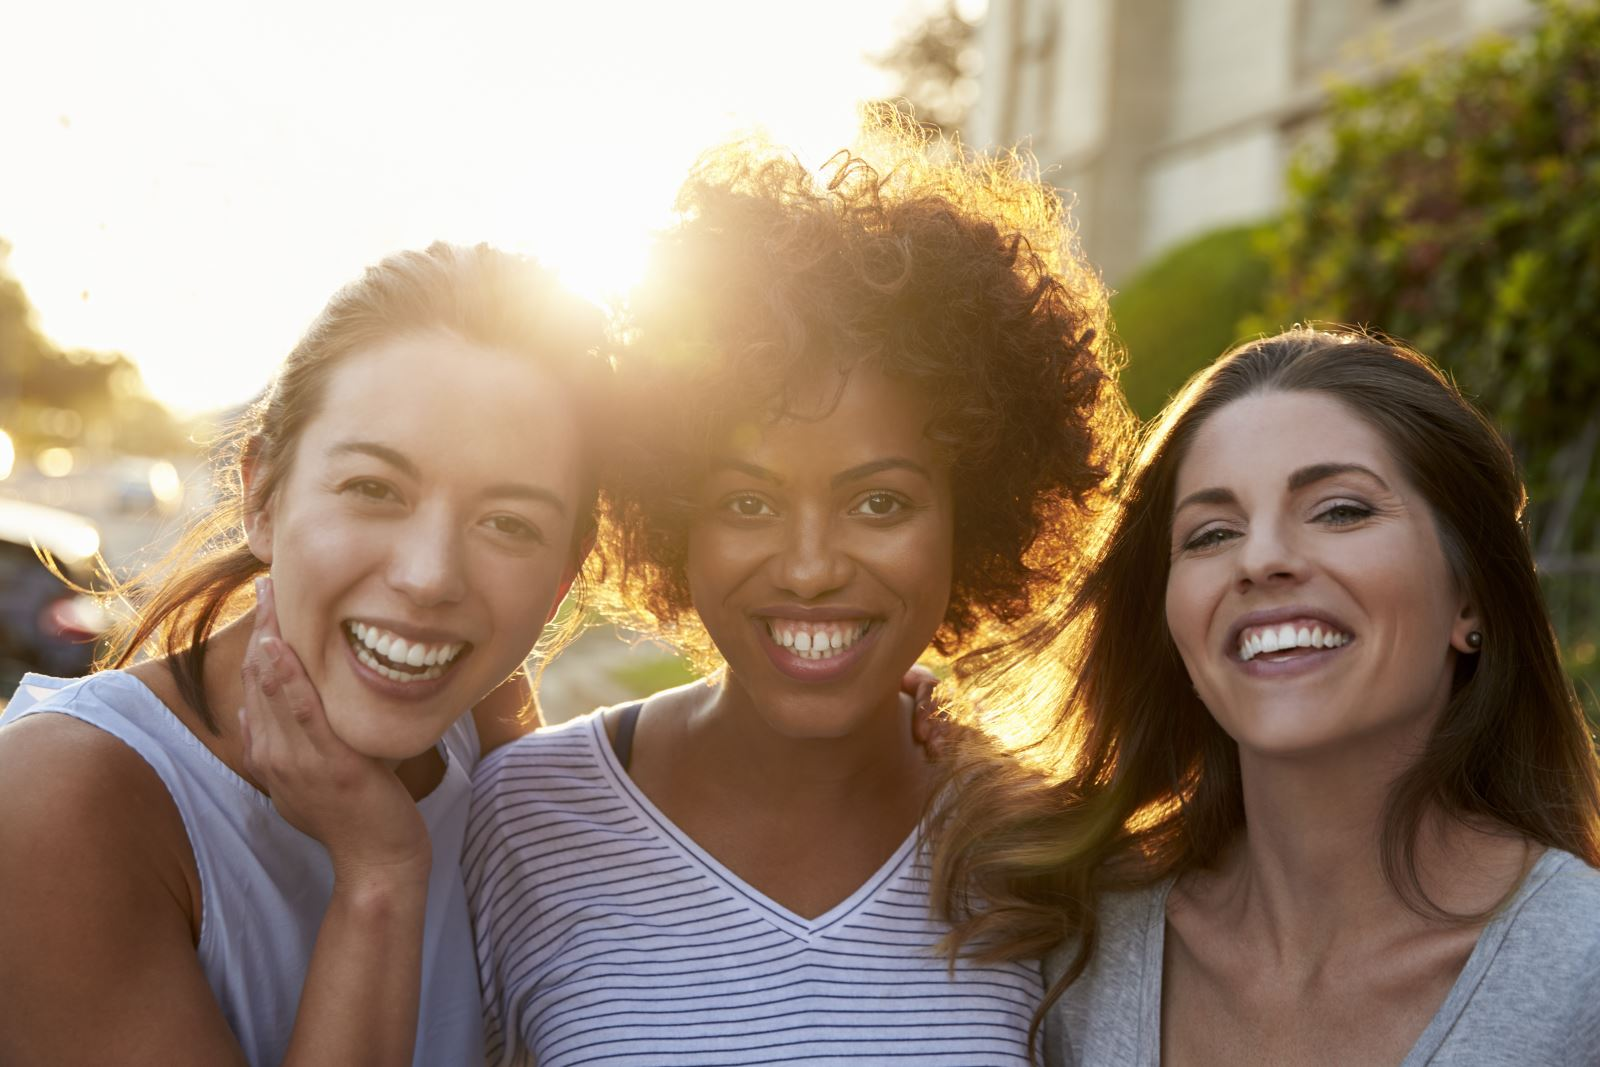 Three smiling women of different ages and ethnicities looking into the camera with the sun behind them.